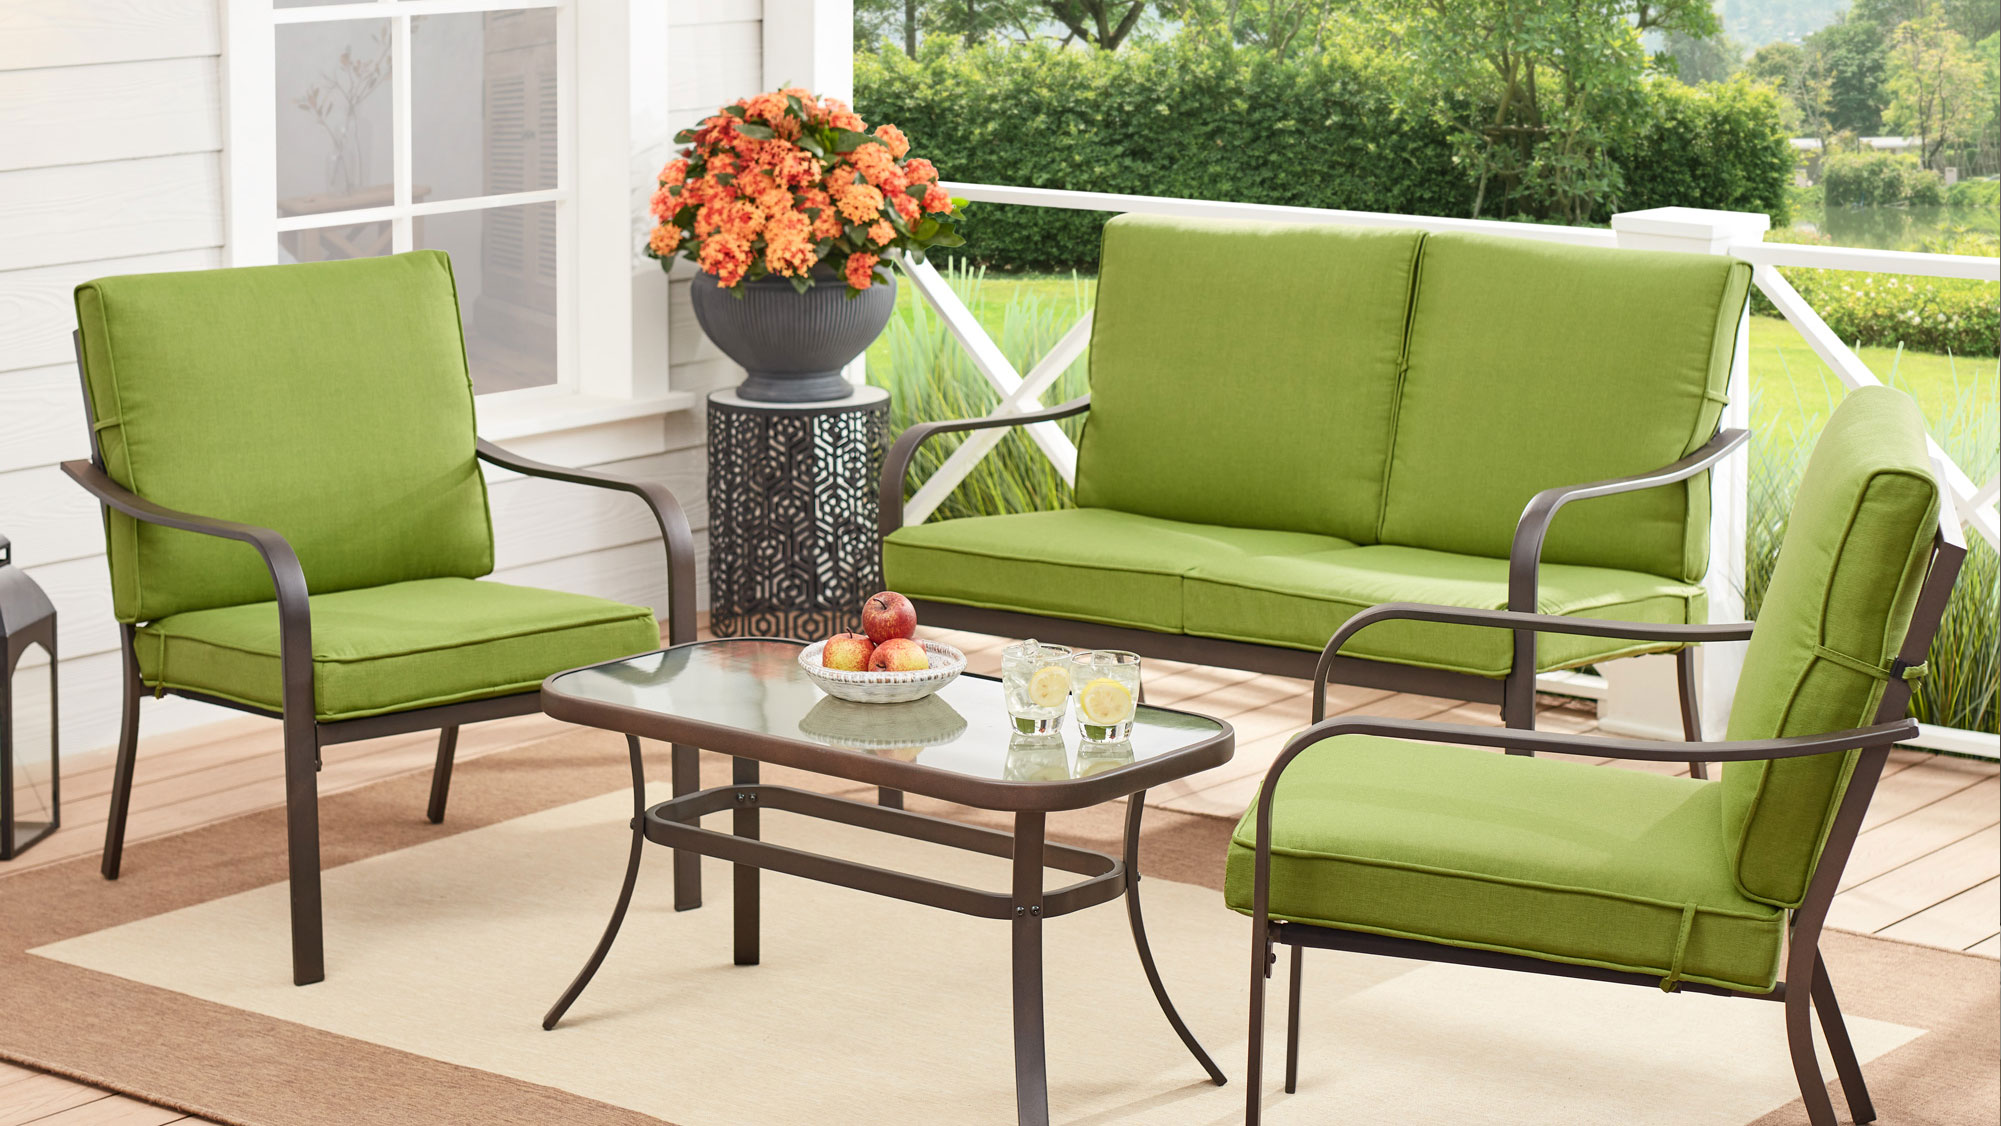 Mainstays Stanton 4-Piece Outdoor Patio Conversation Set